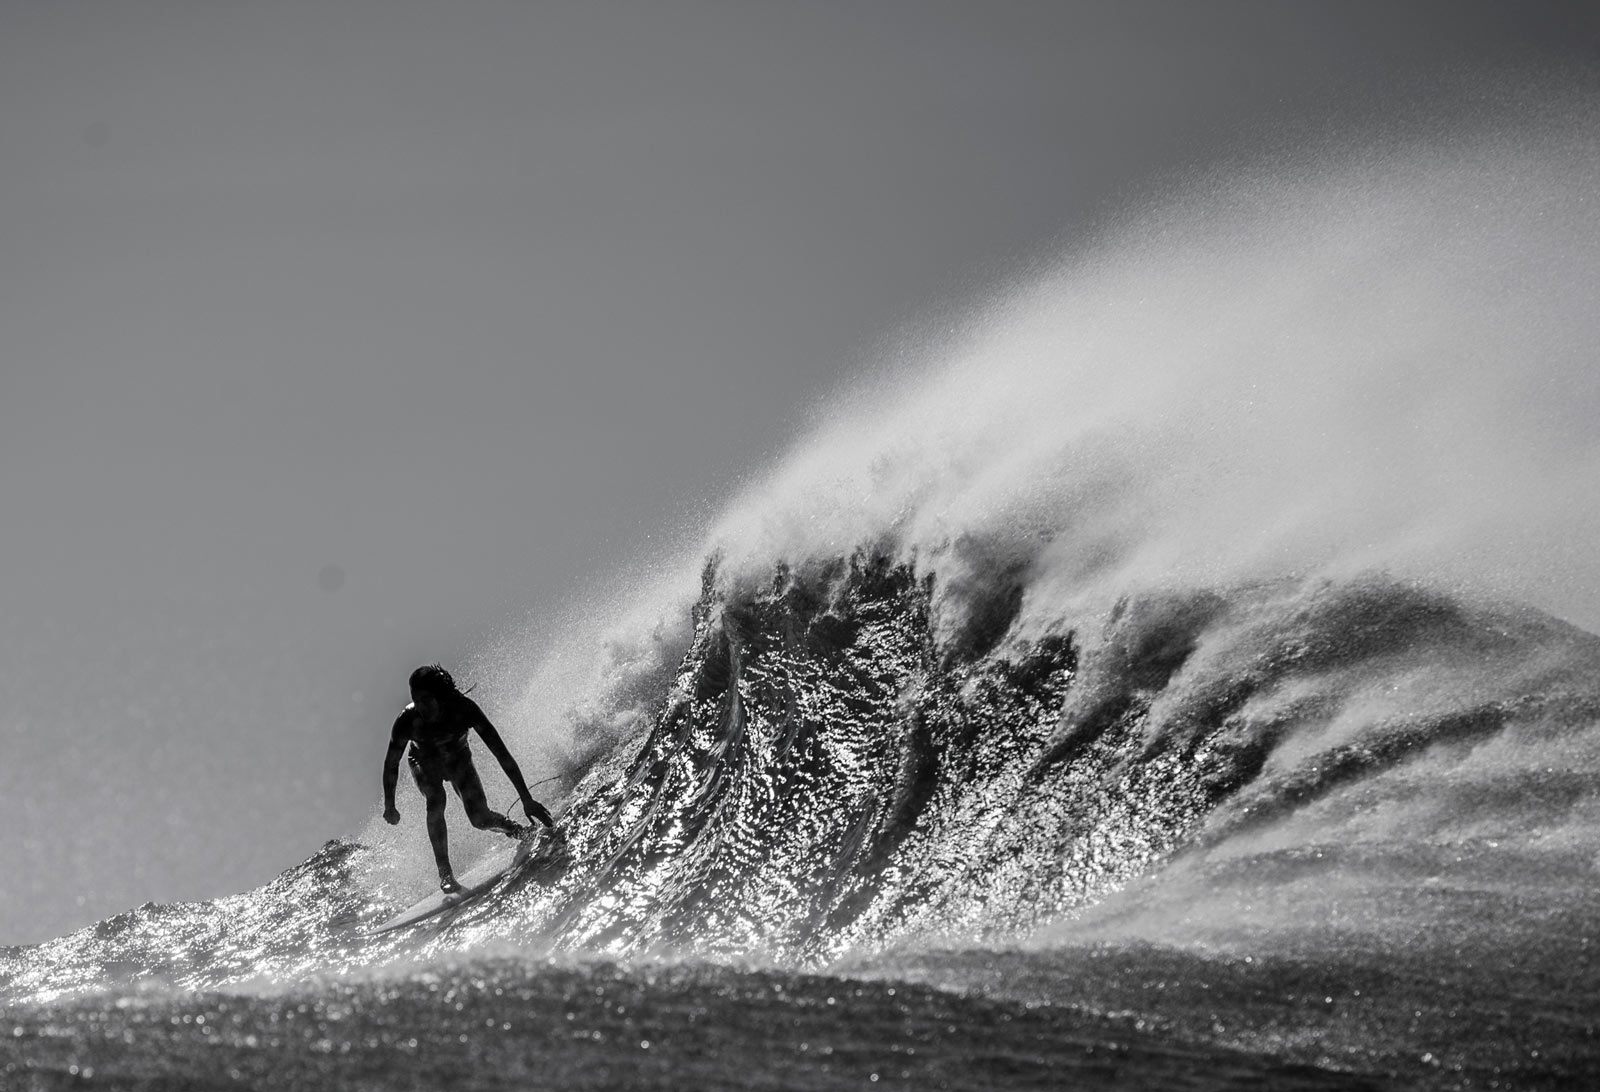 Black and White photo of Craig Anderson surifng a late afternoon wave